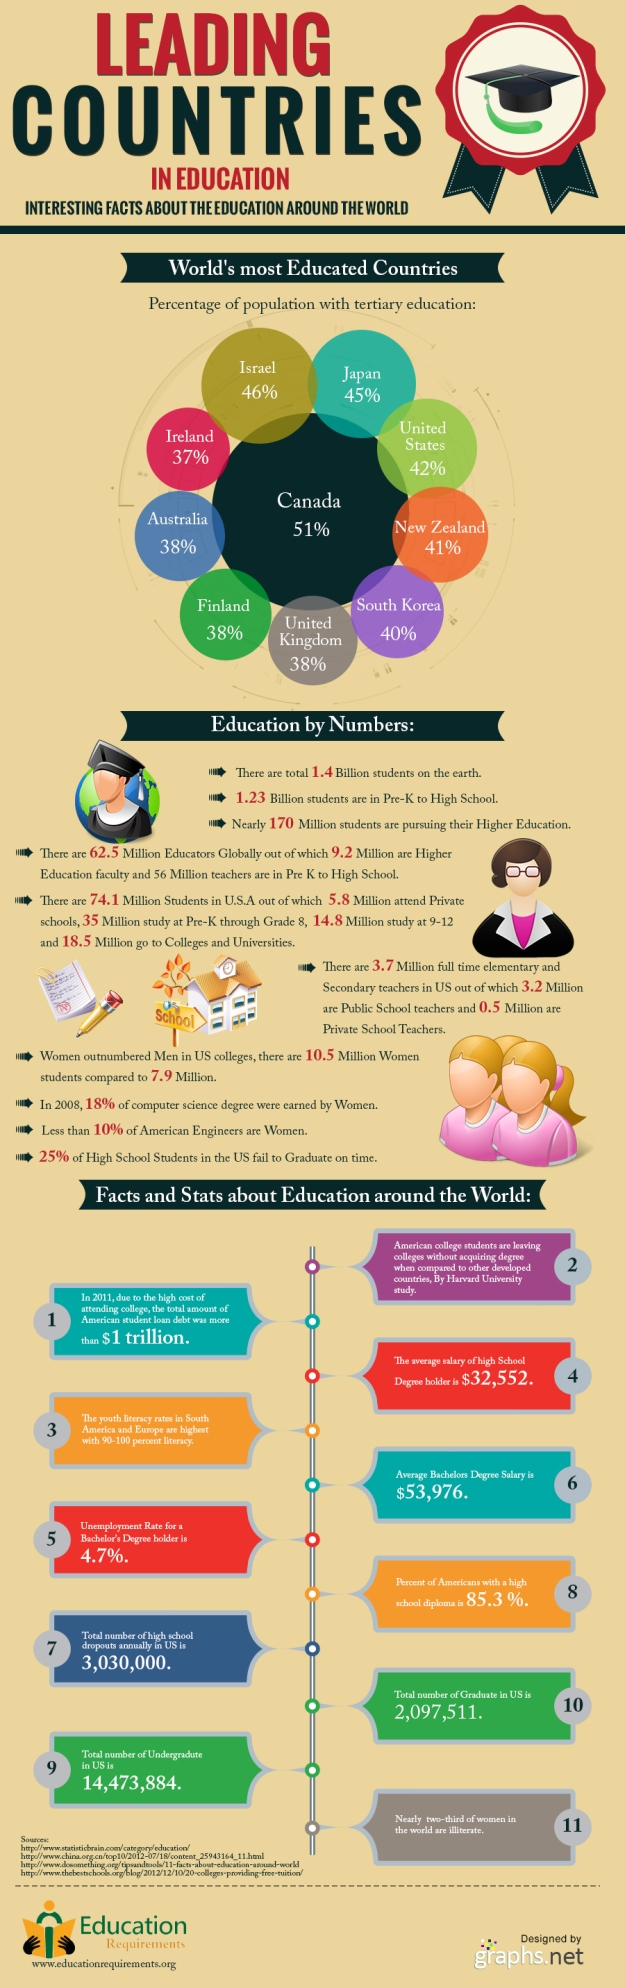 The Most Educated Countries i the World